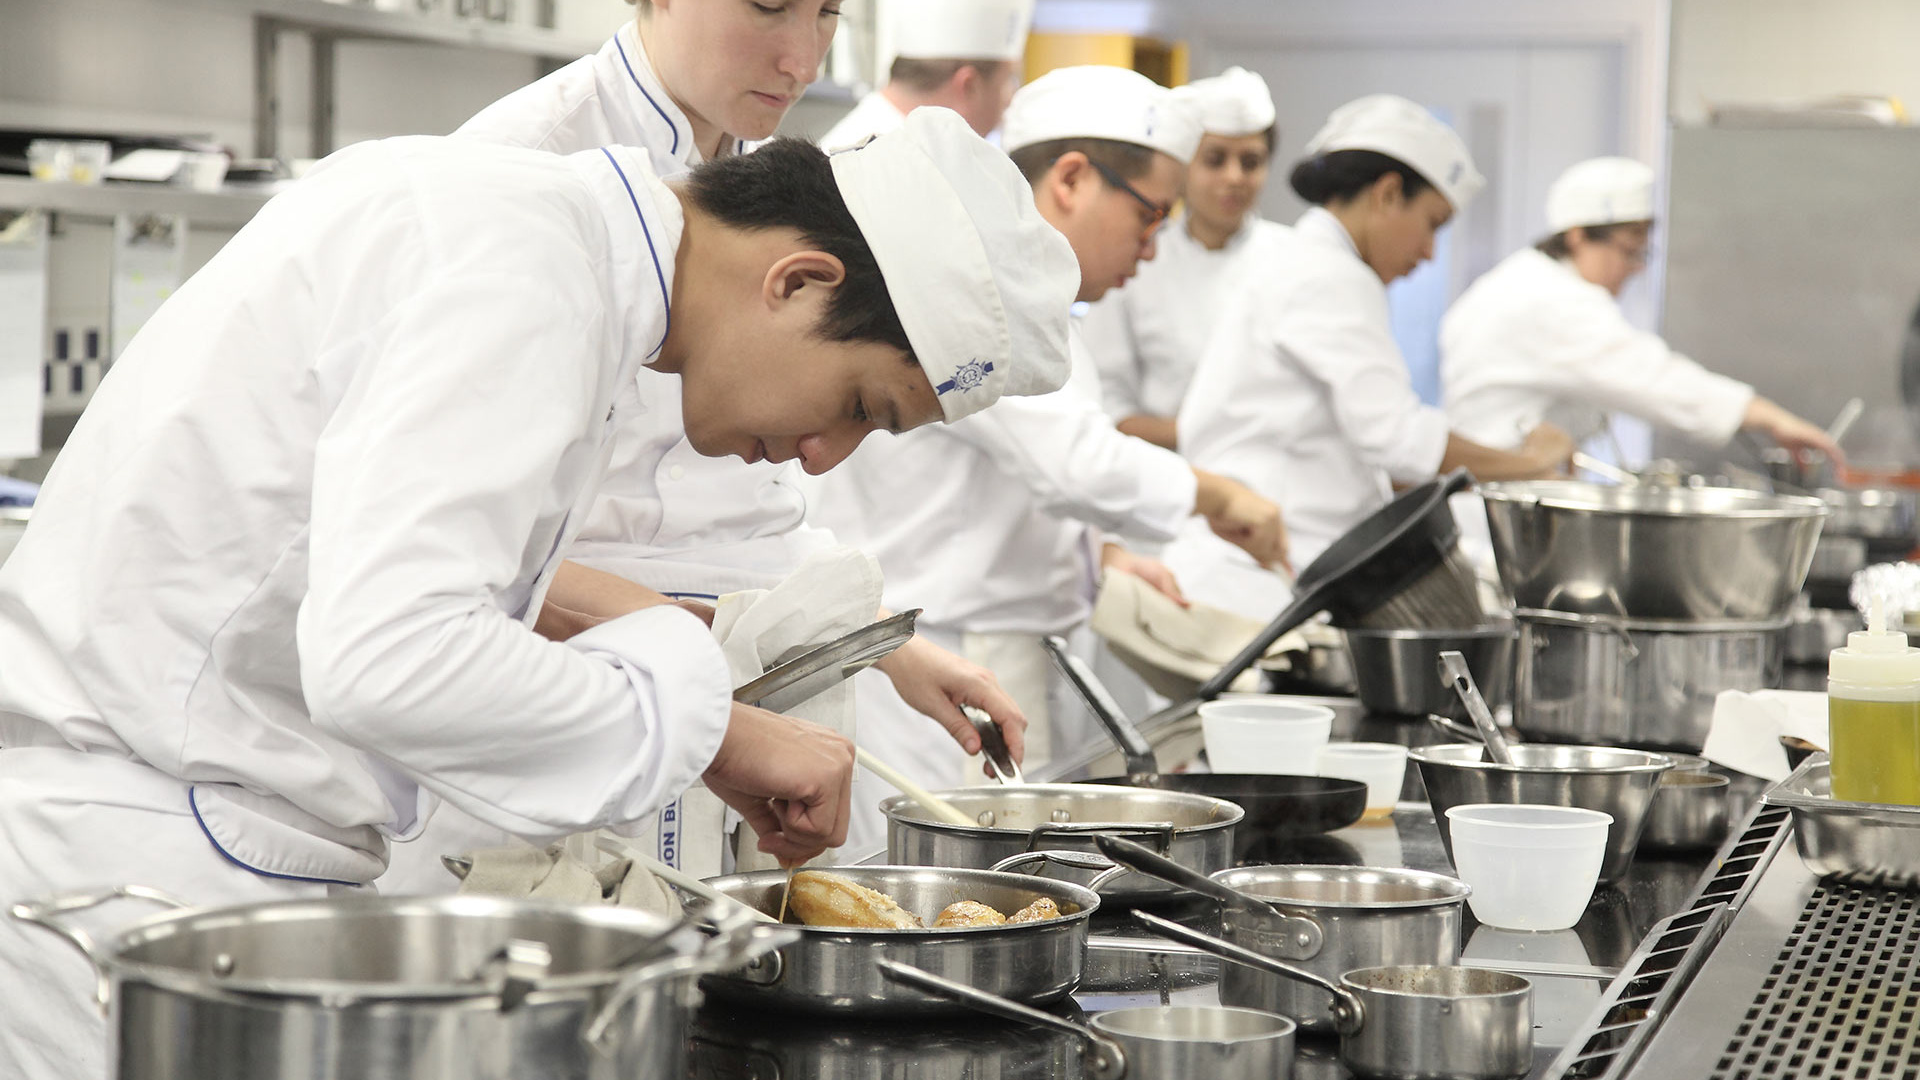 Le Cordon Bleu announces the winner of its 2017 Scholarship Award